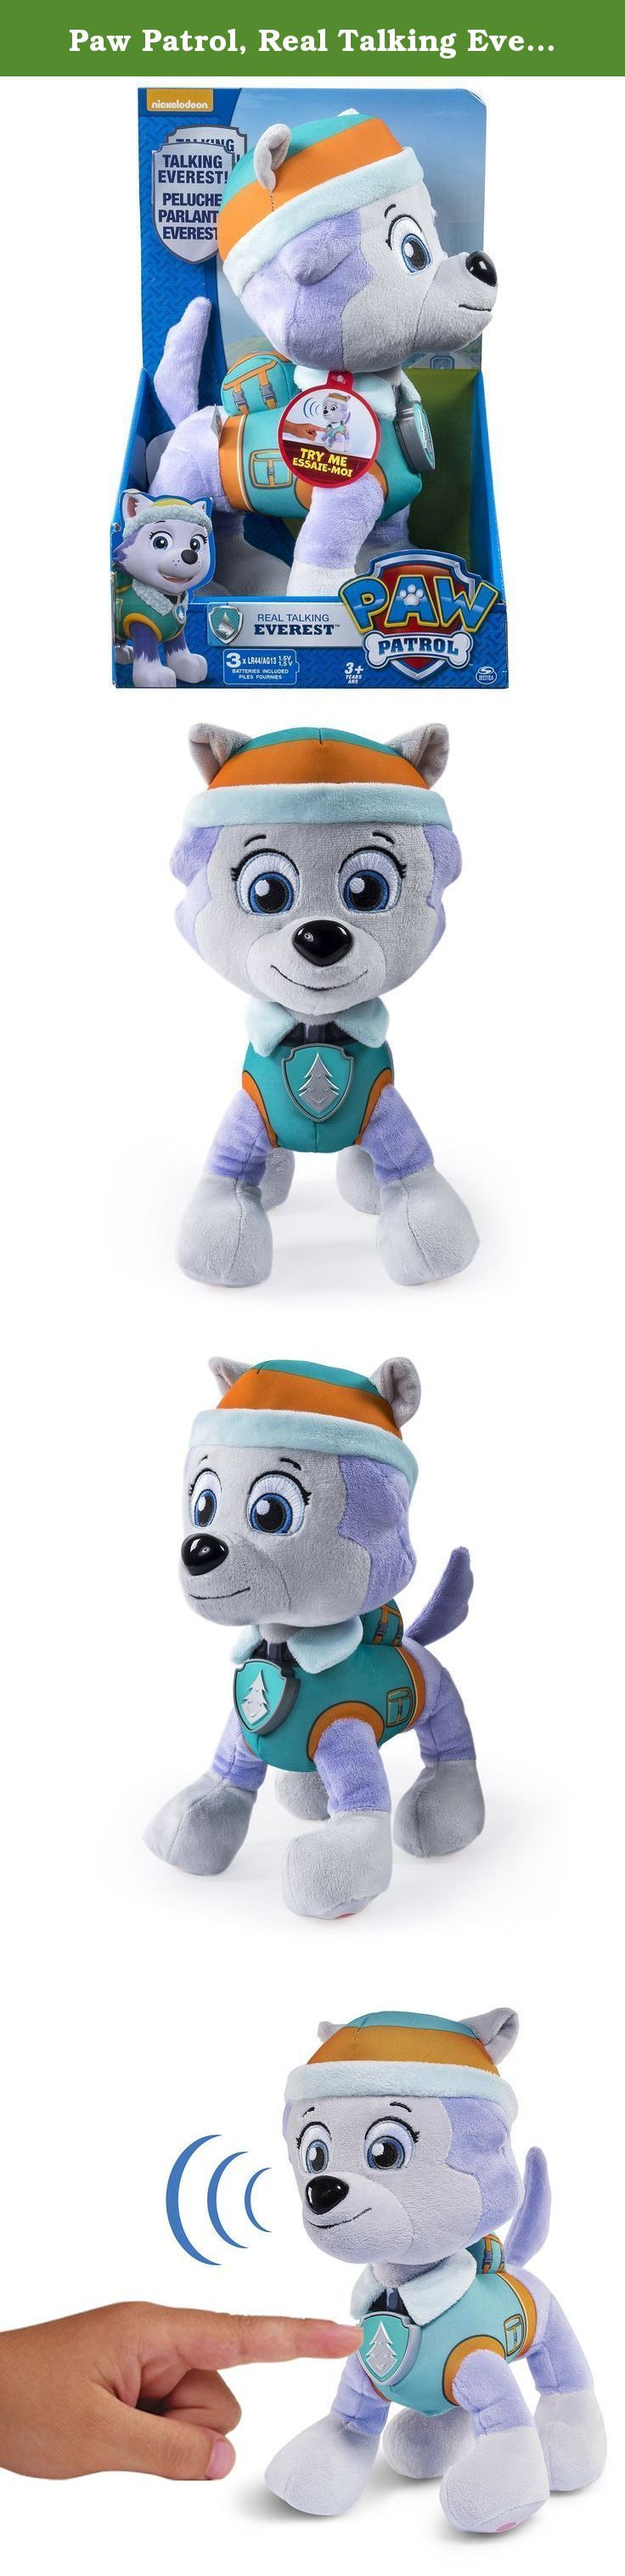 Paw Patrol, Real Talking Everest Plush. Paw Patrol is on a Roll! Now you can bring home your favorite Paw Patrol Pup with Real Talking Everest! Just squeeze Everest's soft body to hear phrases directly from the Paw Patrol show! Perfect for bedtime or playtime Everest comes with you wherever you go and helps you on all of your Paw Patrol adventures throughout the day! Each Real Talking plush Pup comes with a badge, their Paw Patrol vest and hat. Collect all your favorite pups including…